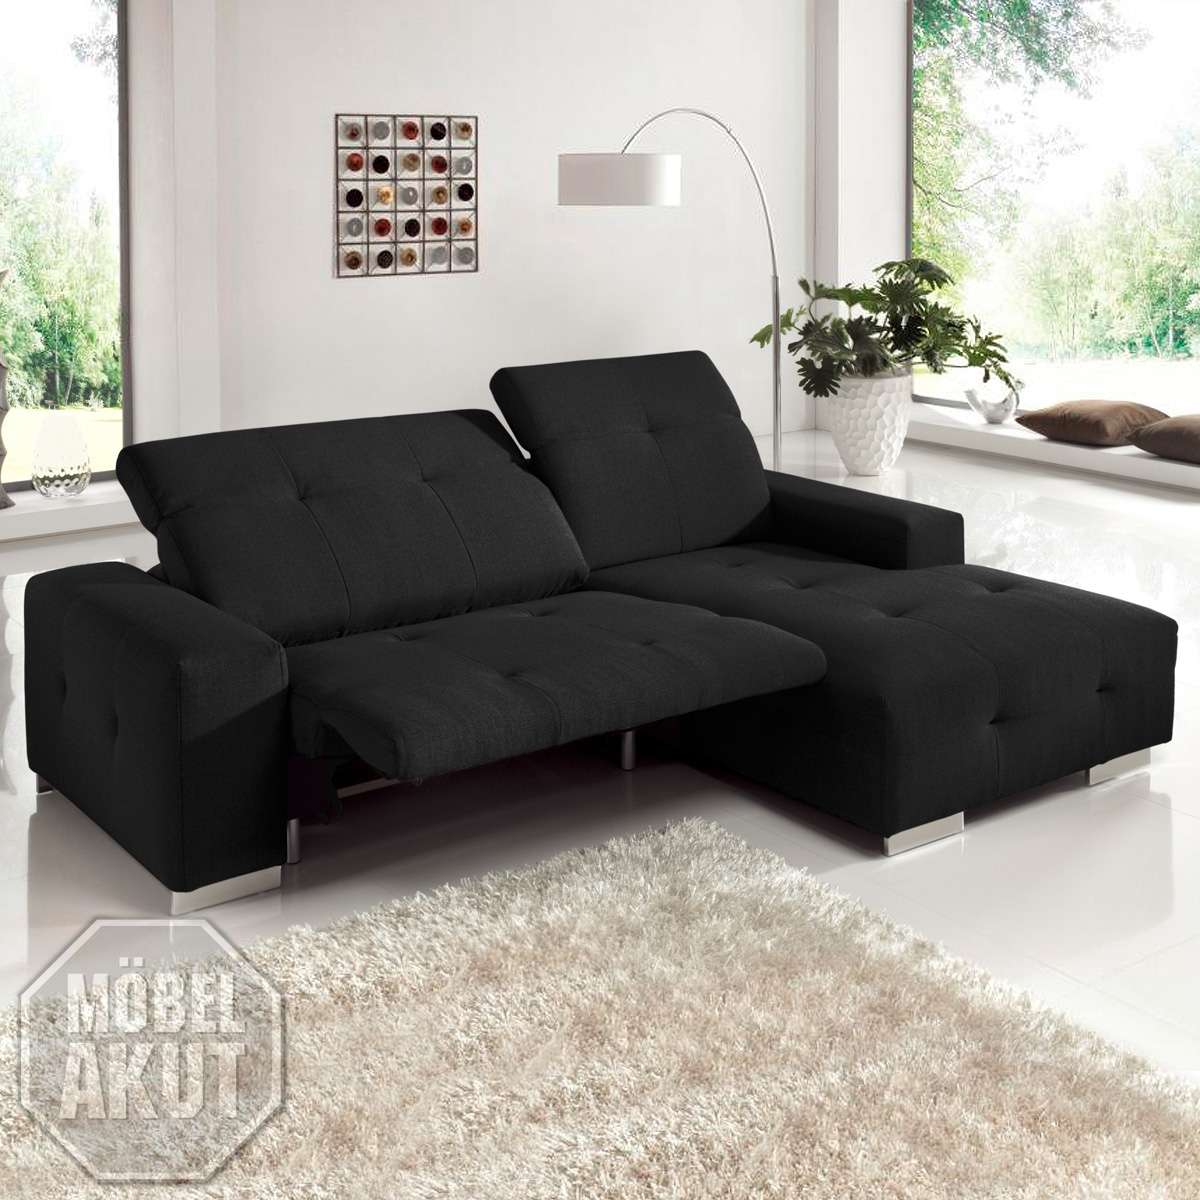 Ecksofa francisco sofa lila mit elektrischer relaxfunktion for Sofa elektrisch